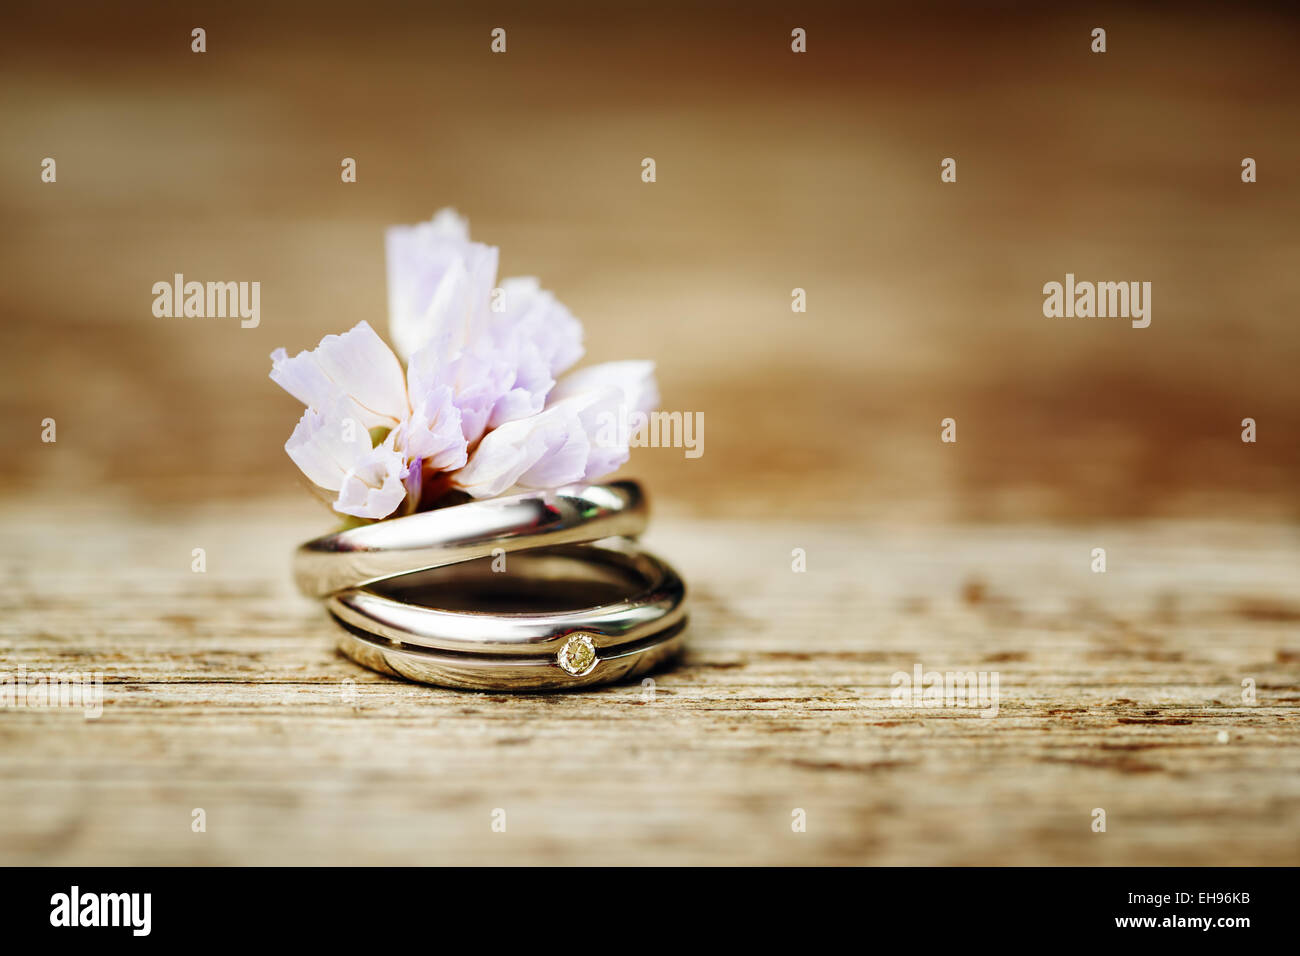 Wedding Engagement Rings Close Up With Cute Wild Flower On Wood Background Rustic Style Decoration Instagram Color Effect